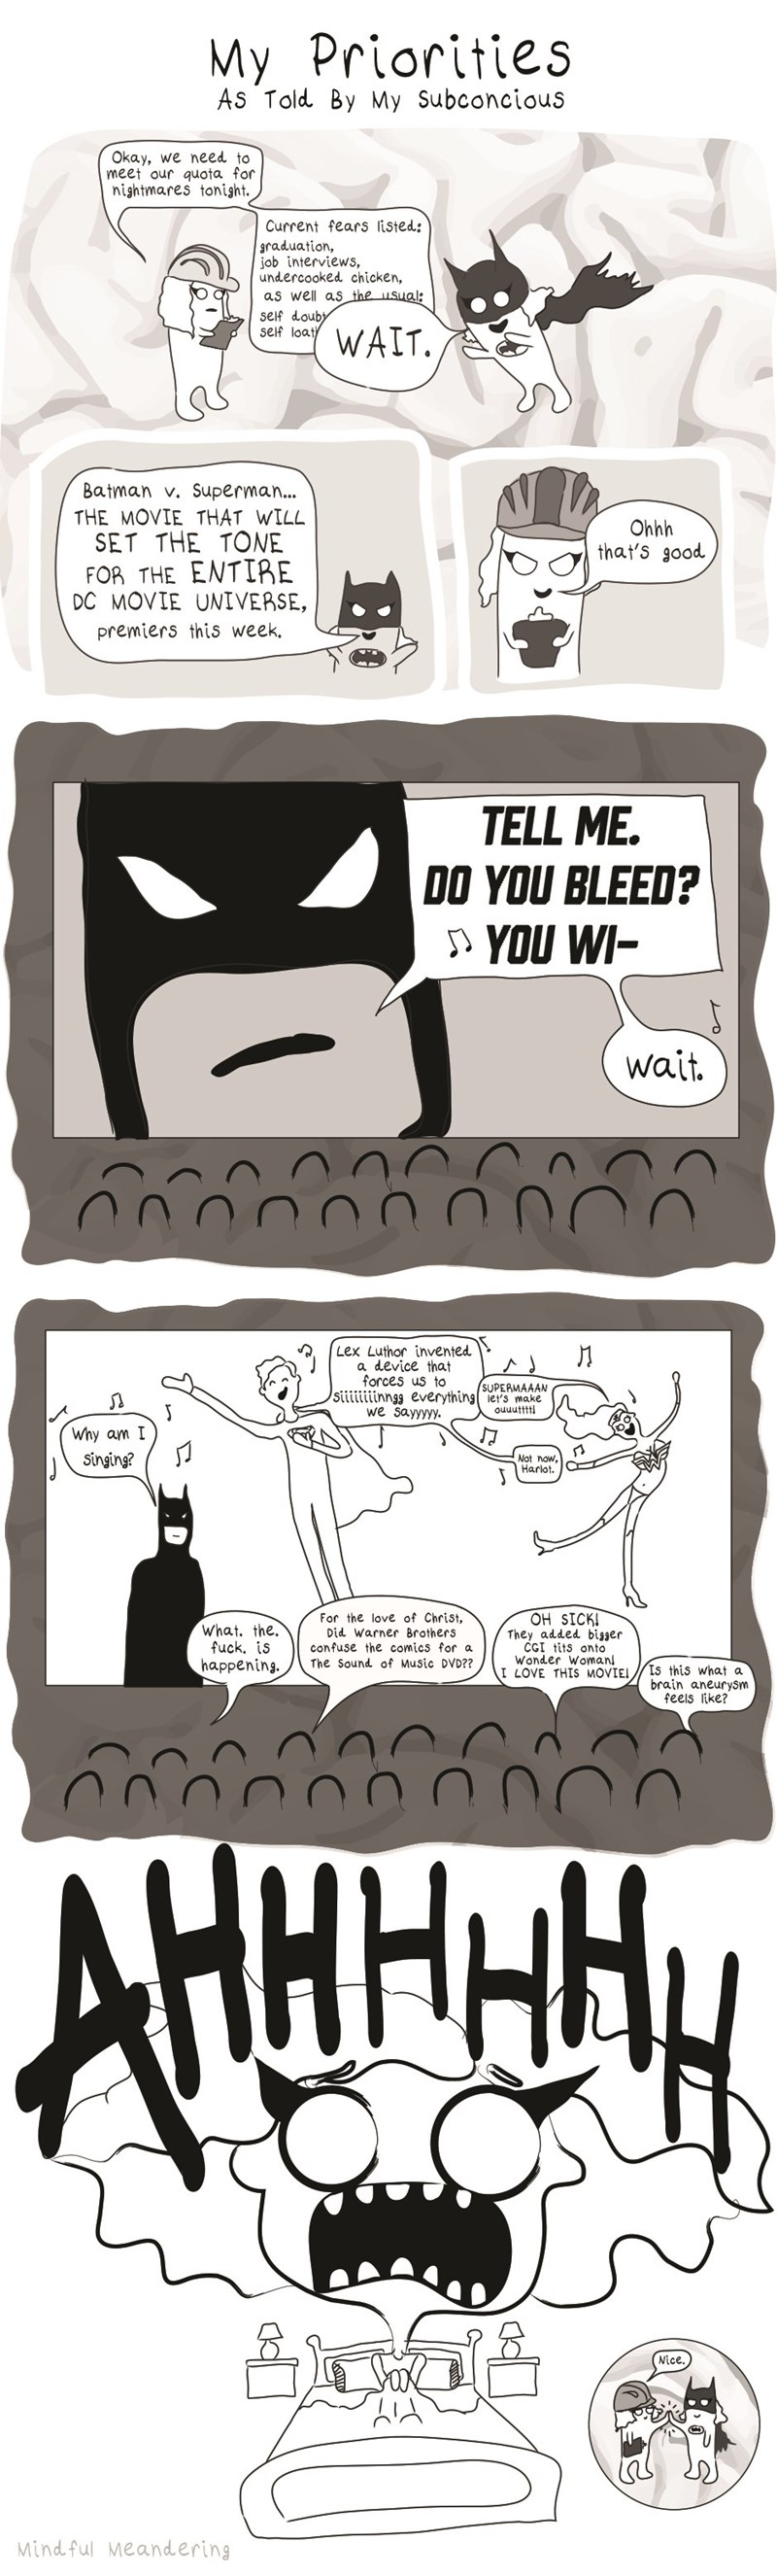 web comics batman v superman nightmares It Is About Time for a Superhero Musical...